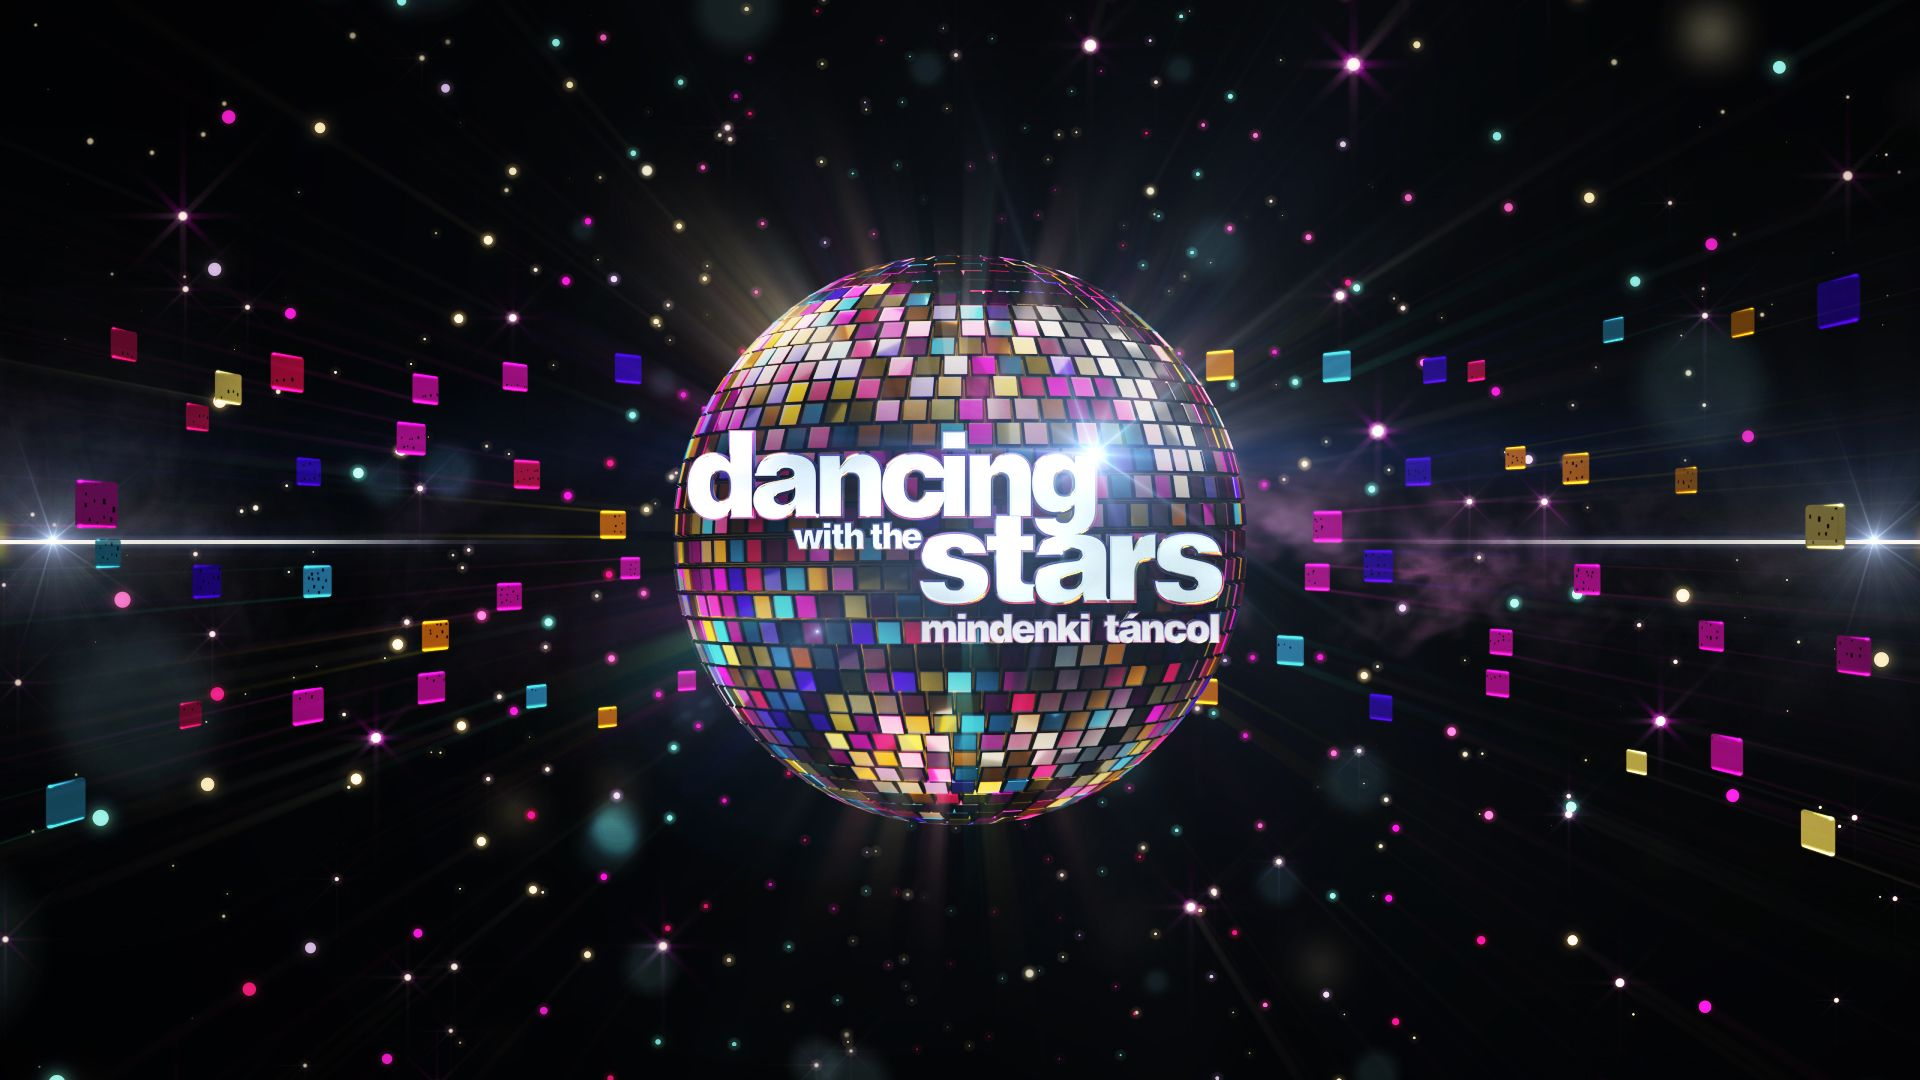 Dancing with the Stars élő show jegy